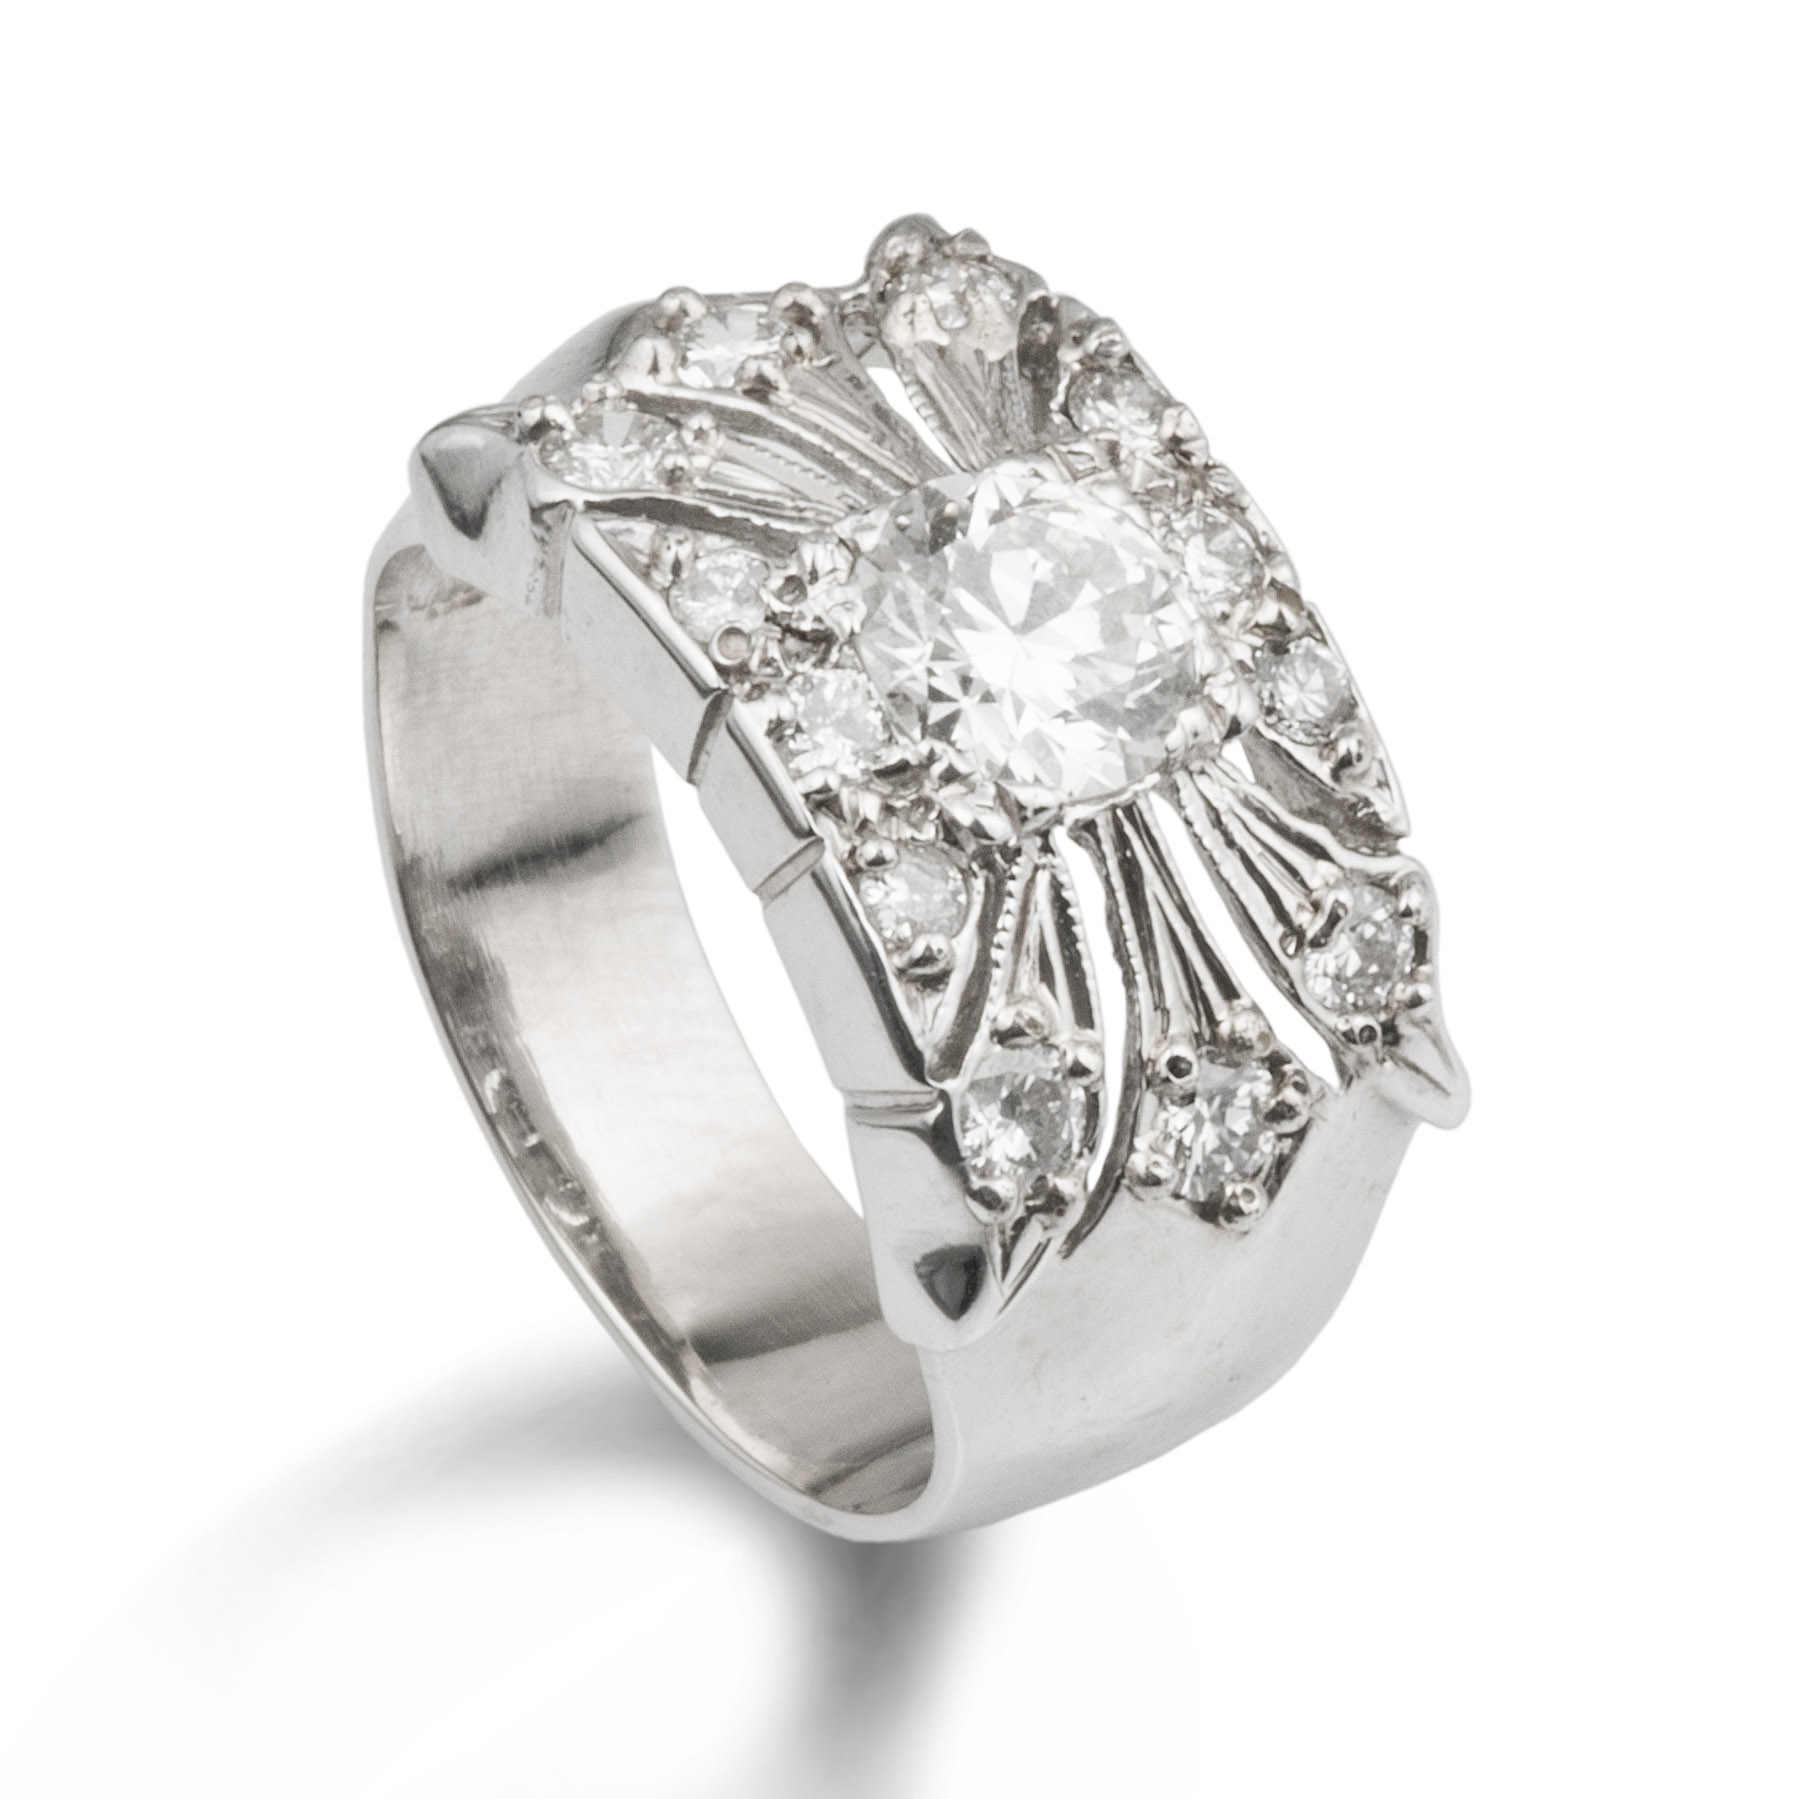 Scottsdale Diamond Buyers | Sell Diamonds Scottsdale | Sell ...